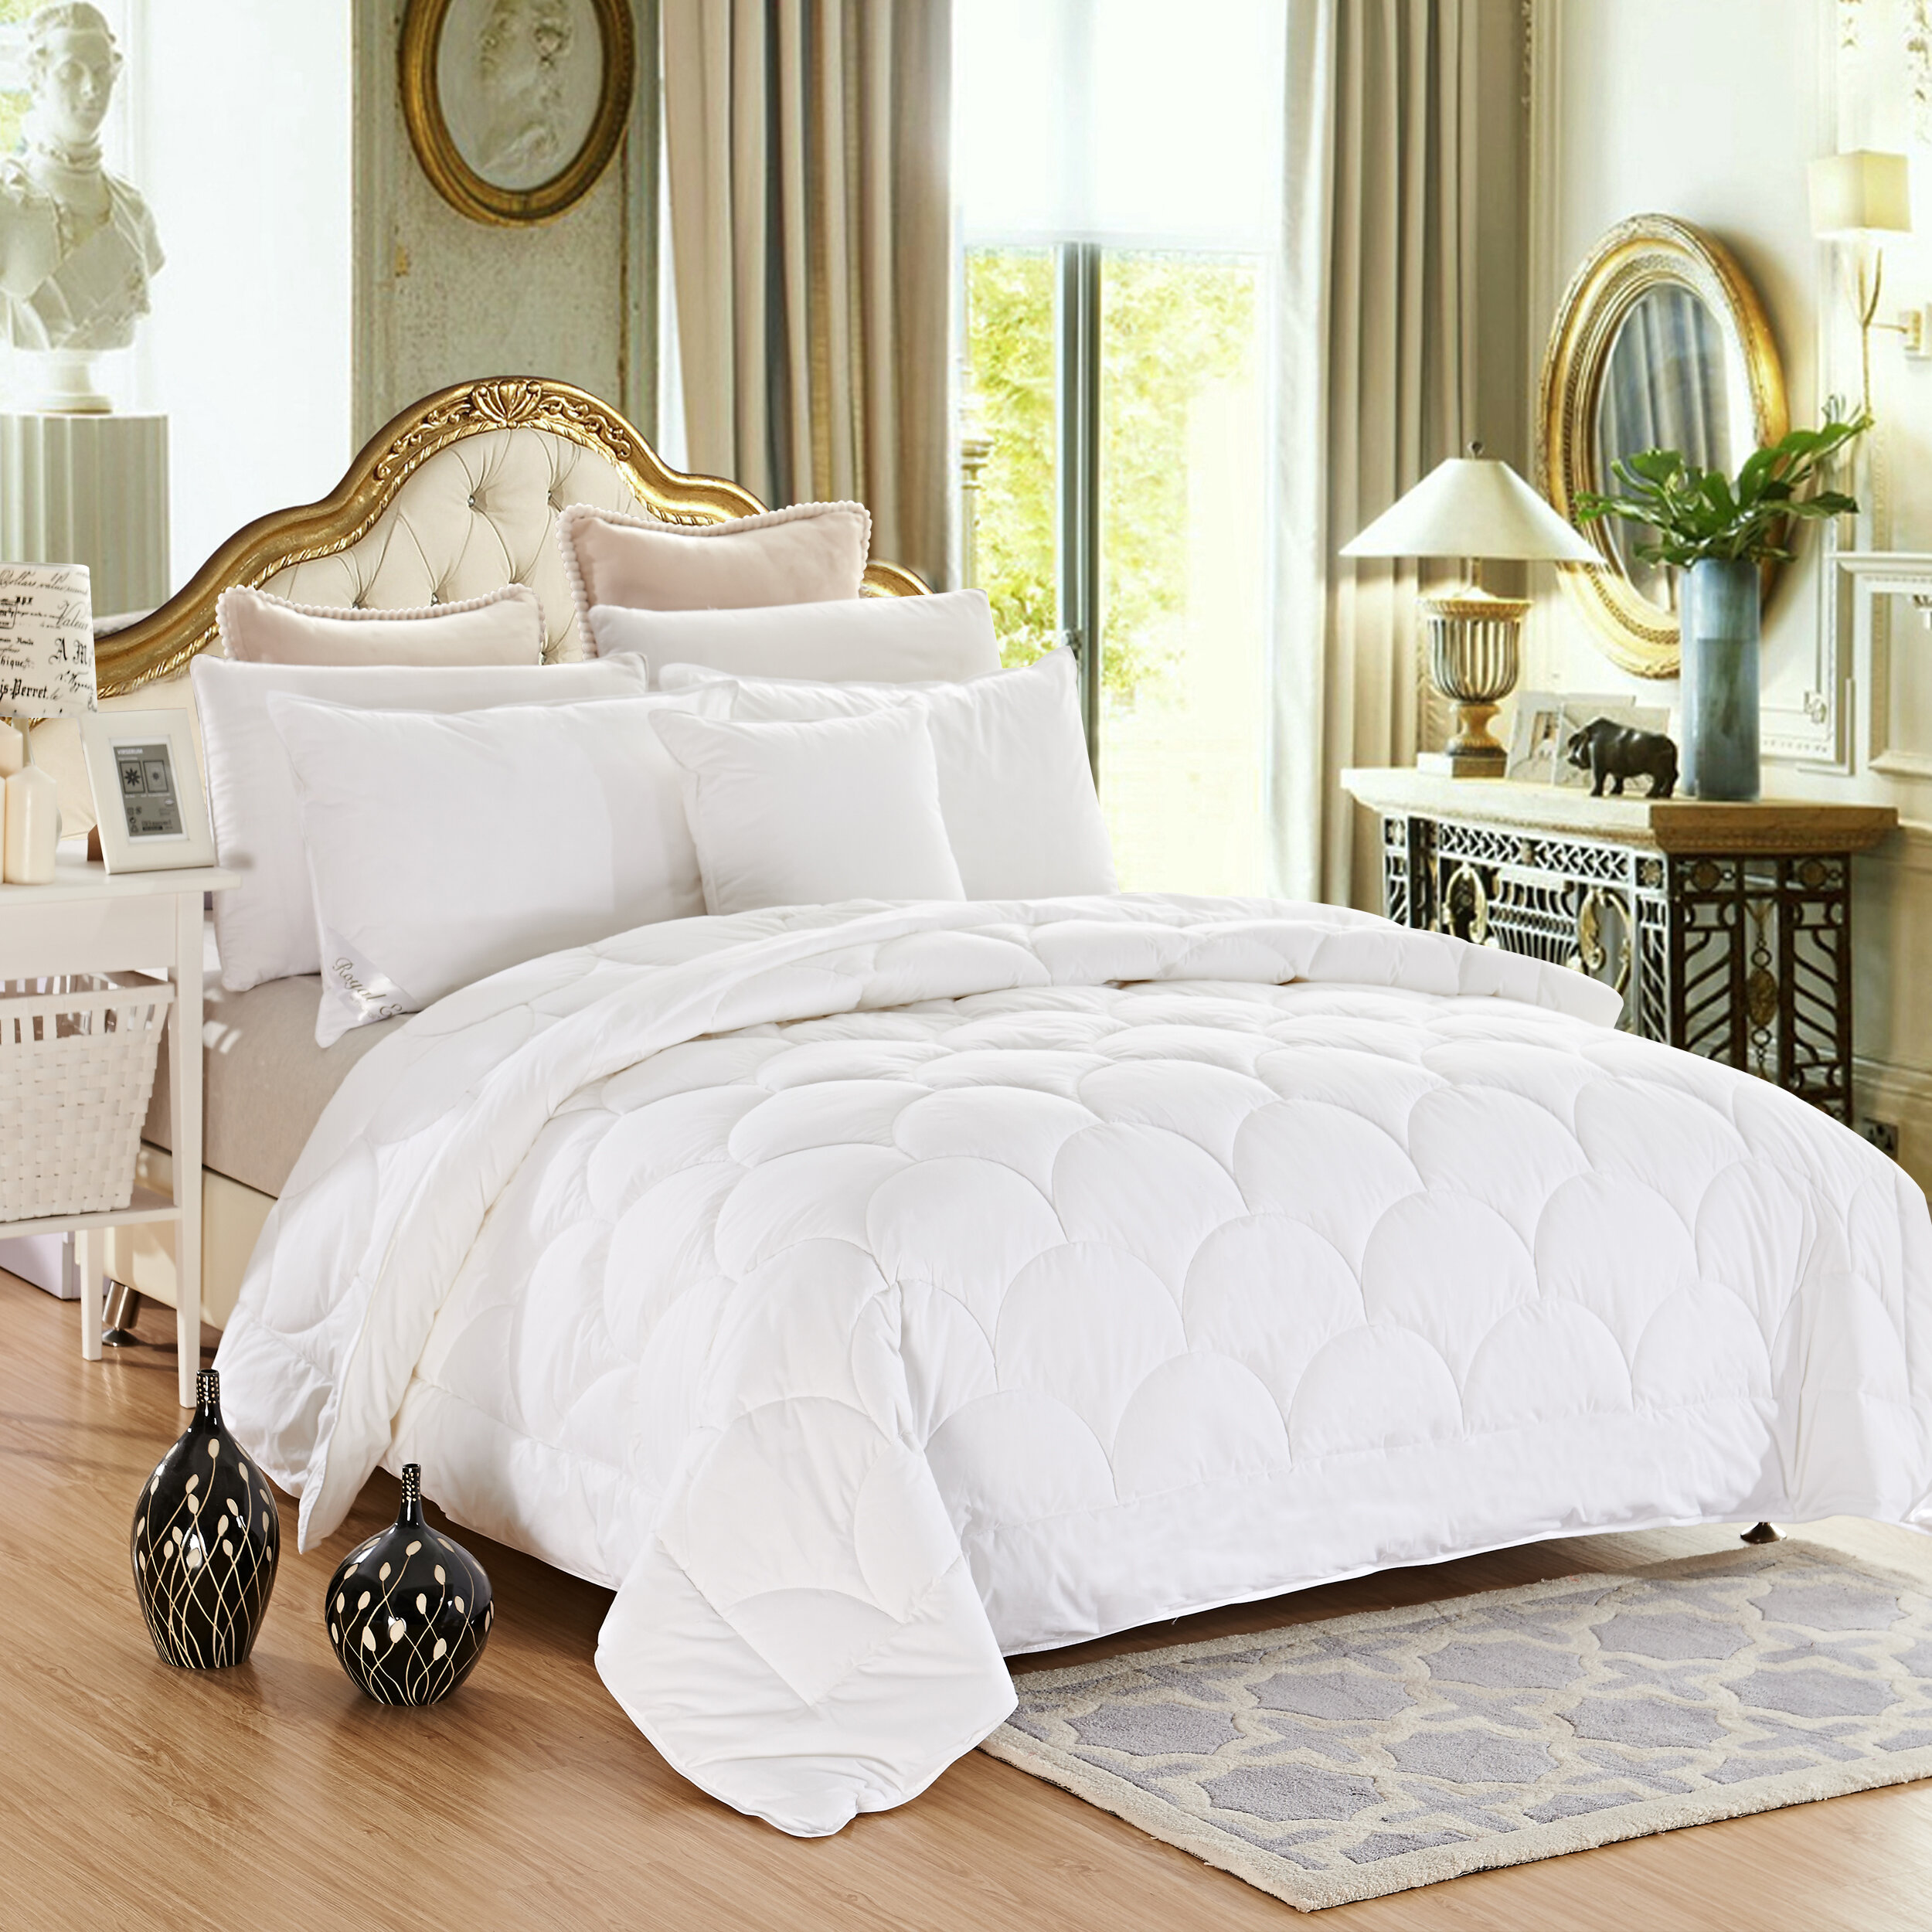 rayon bamboo overstock with thread from pocket today set sheets sateen free shipping flat bed bath deep sheet count oversize product bedding extra